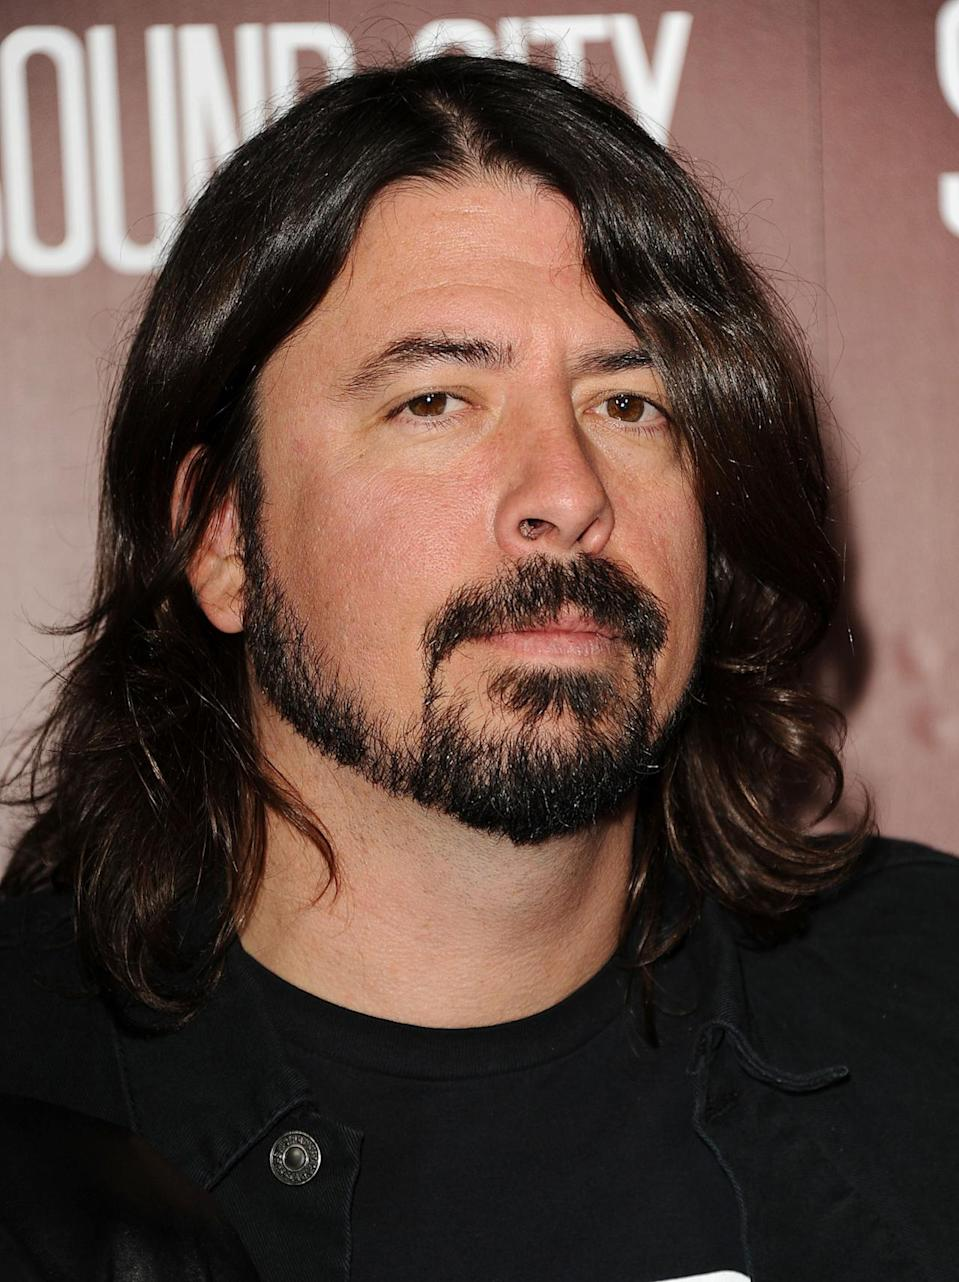 <p>After drumming for Nirvana and becoming the frontman for the Foo Fighters, Dave Grohl grew his hair even longer — with a formidable goatee. <i>(Photo: Getty Images)</i></p>